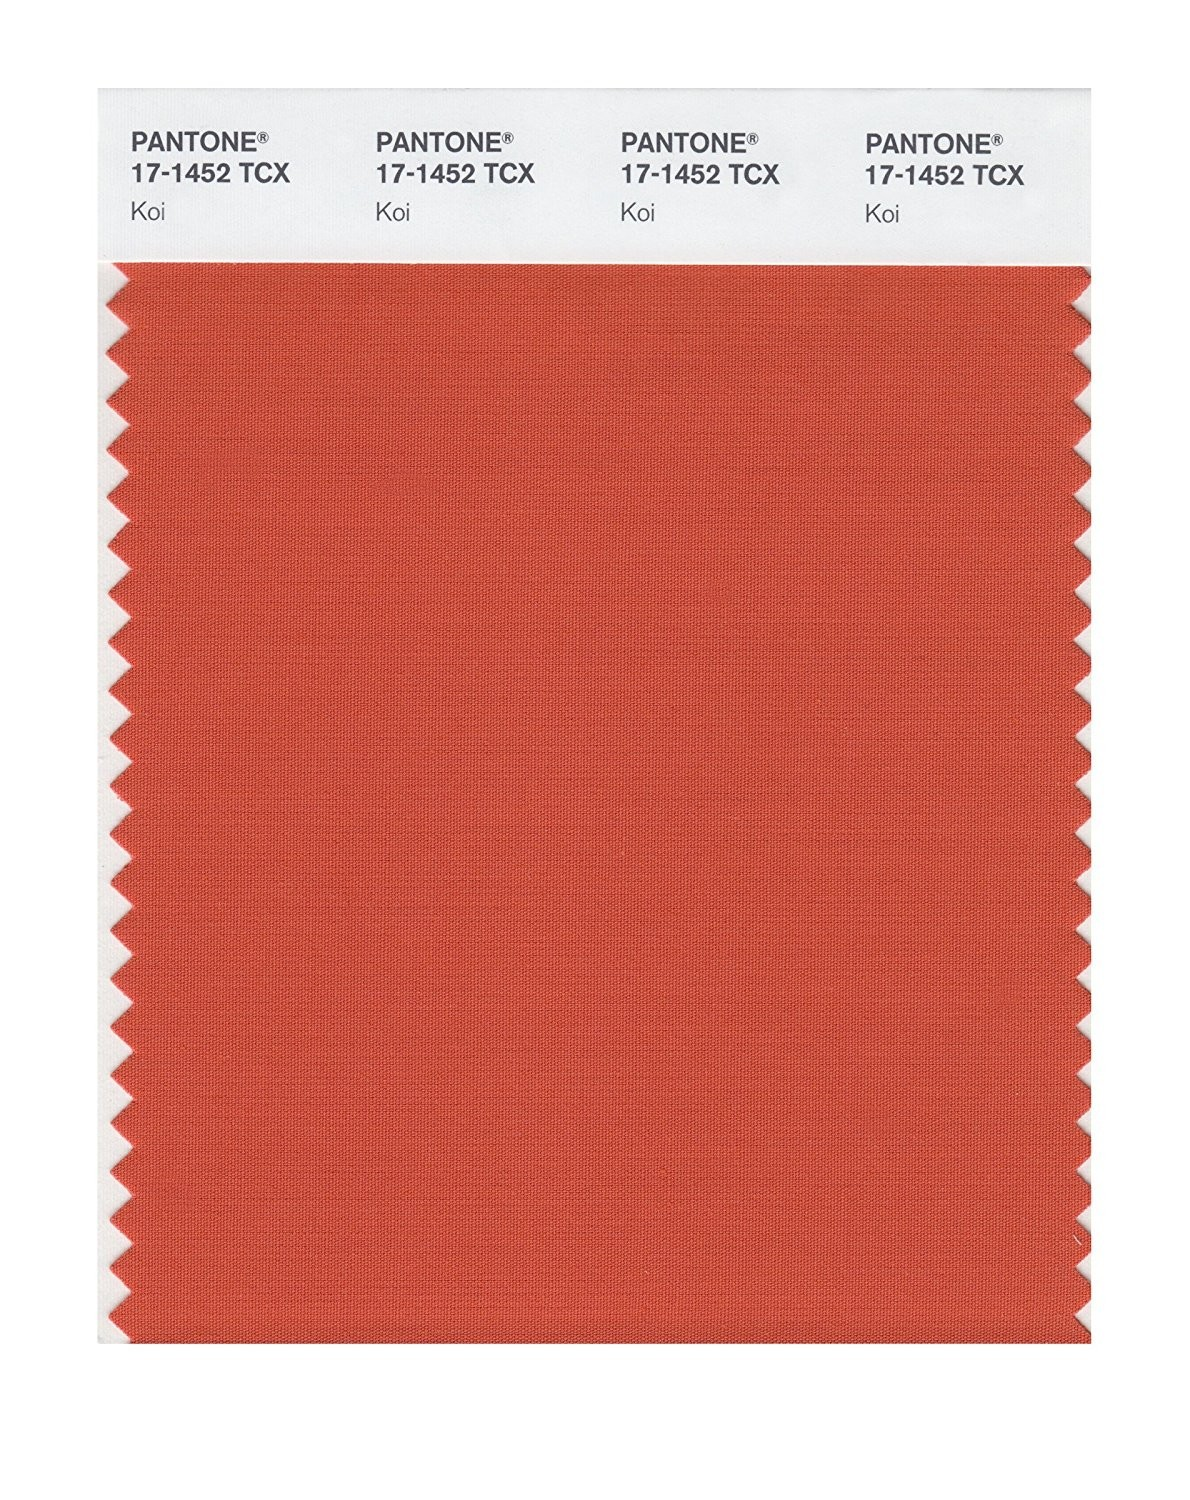 Pantone 17-1452 TCX Swatch Card Koi